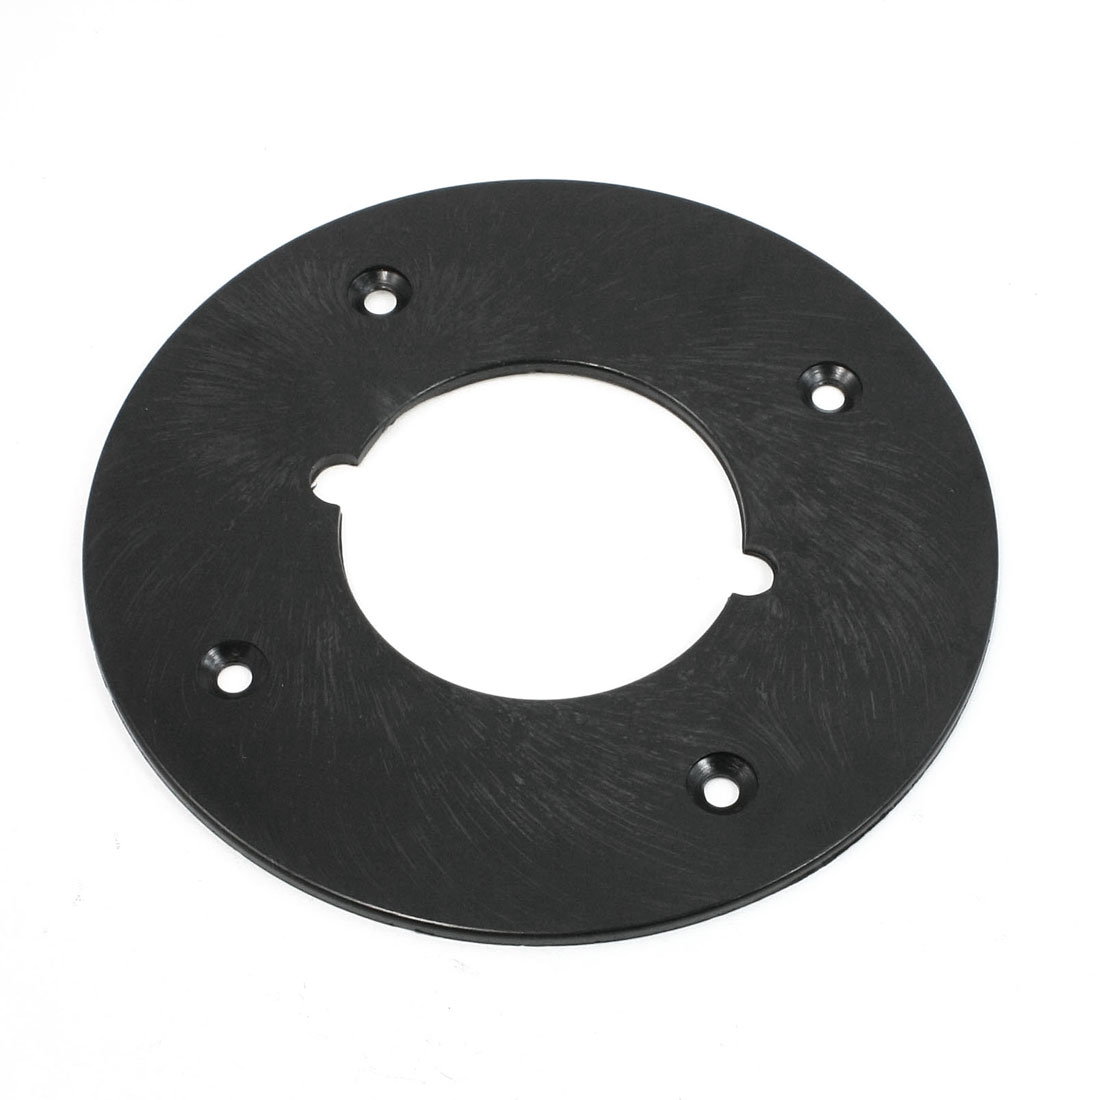 Plastic Round Base Plate Replacement Part for Makita 3612 Router